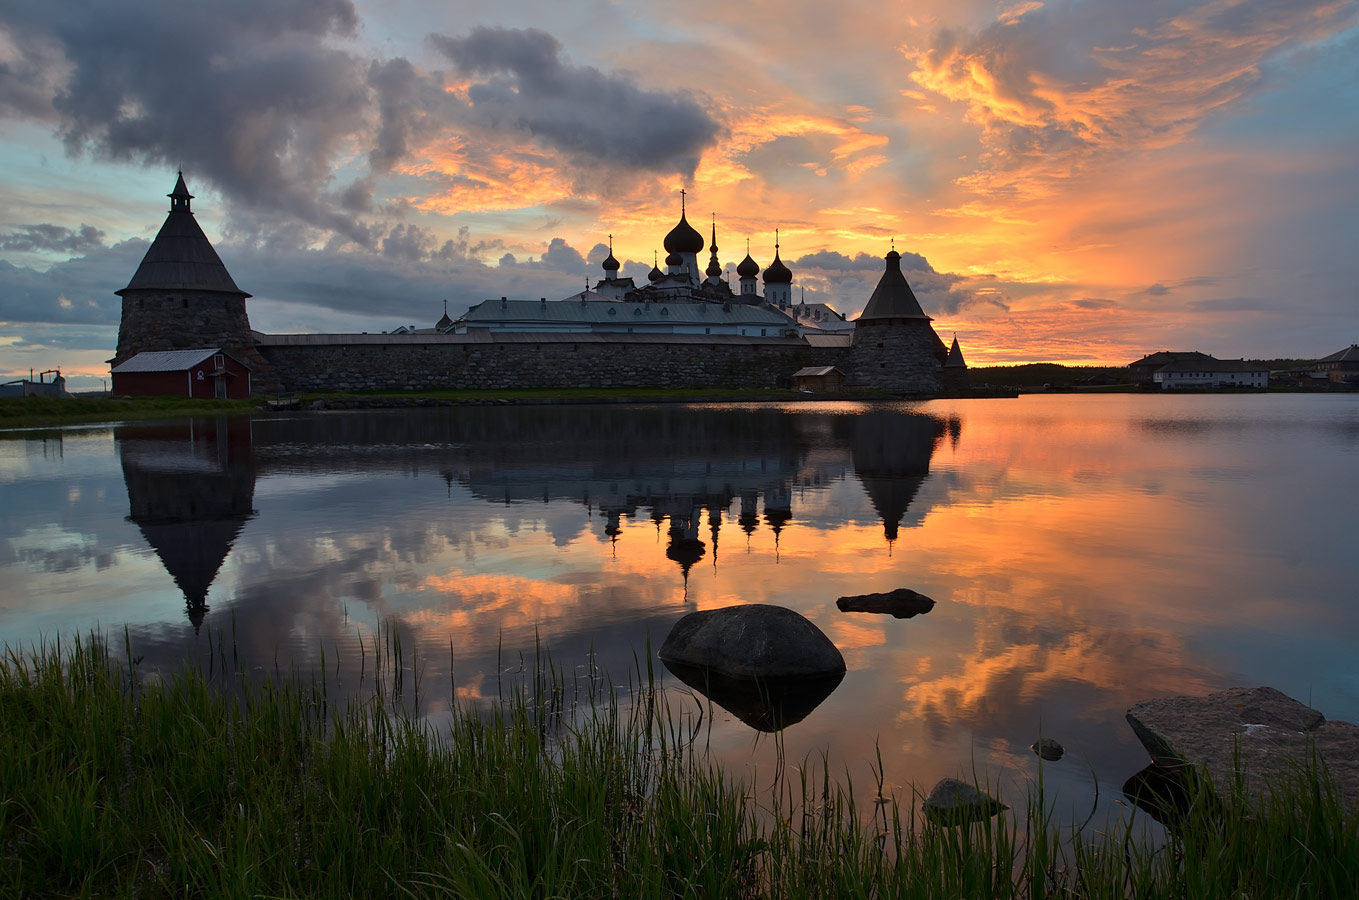 Light of Solovki, © Pavel Afanasyev, 2nd Place, Russian Civilization International Photo Contest